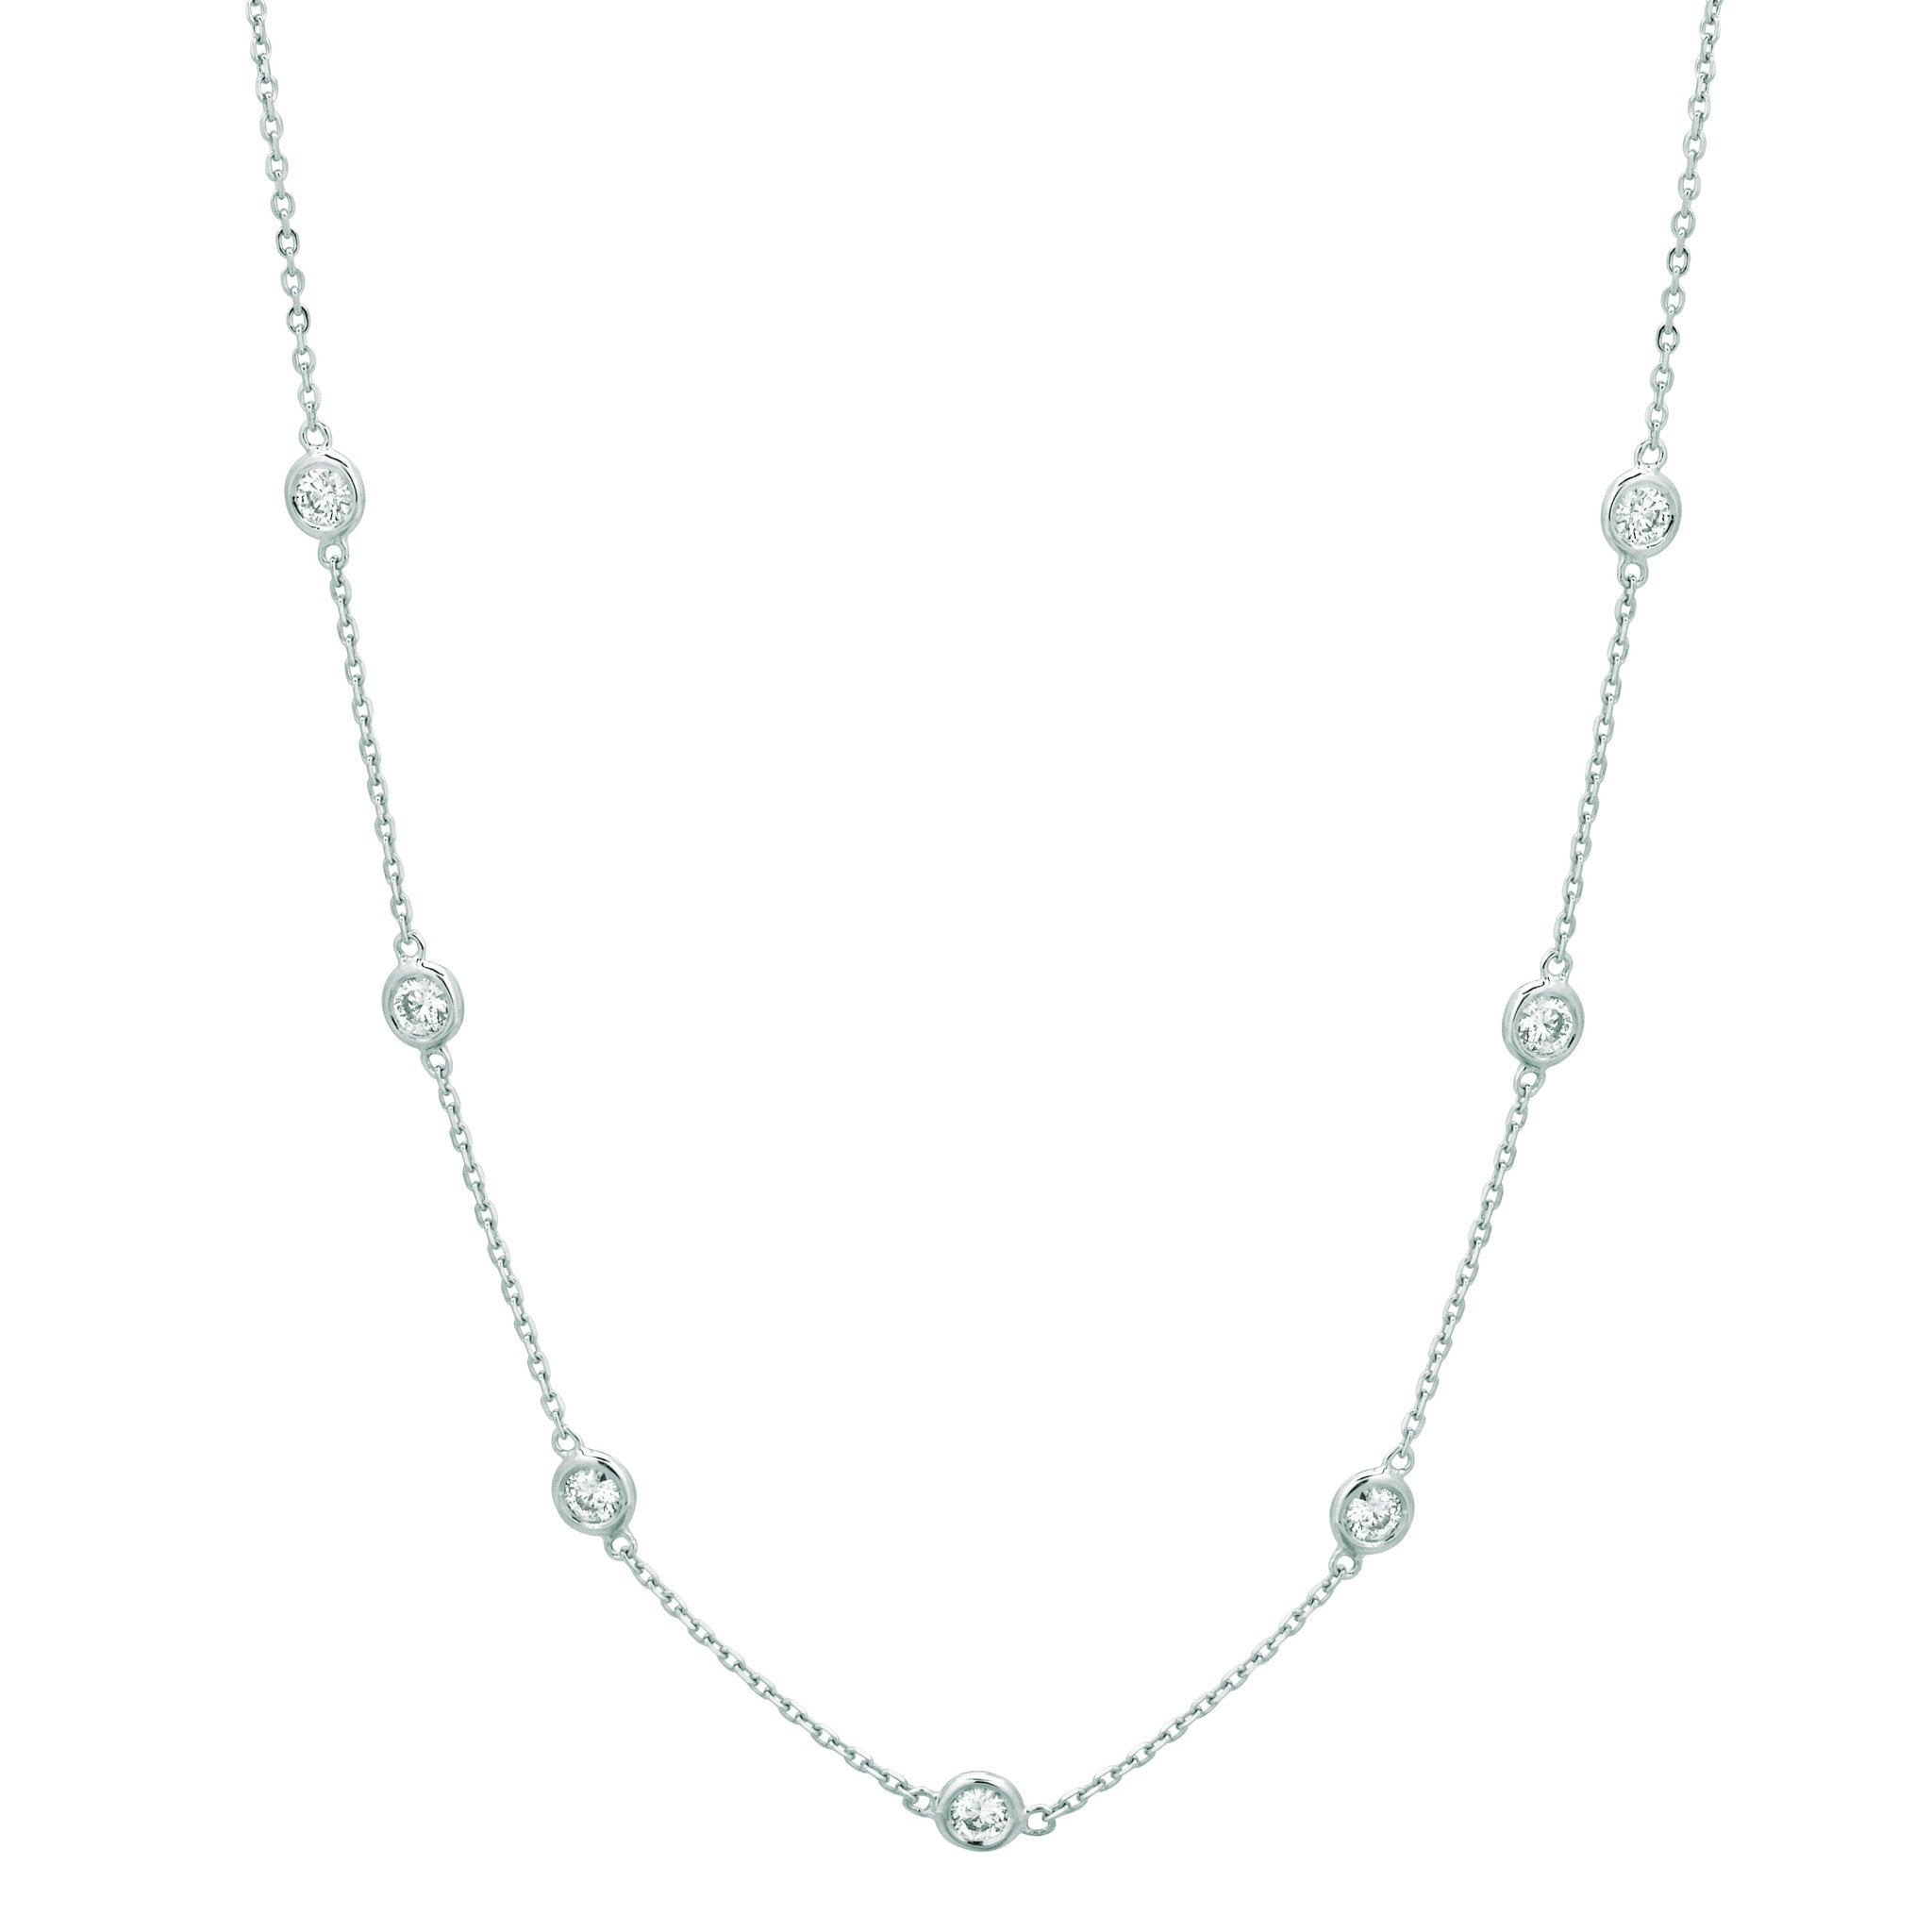 Diamond Half Way Around Chain Necklace 0.25 Carats 14K White Gold Necklace